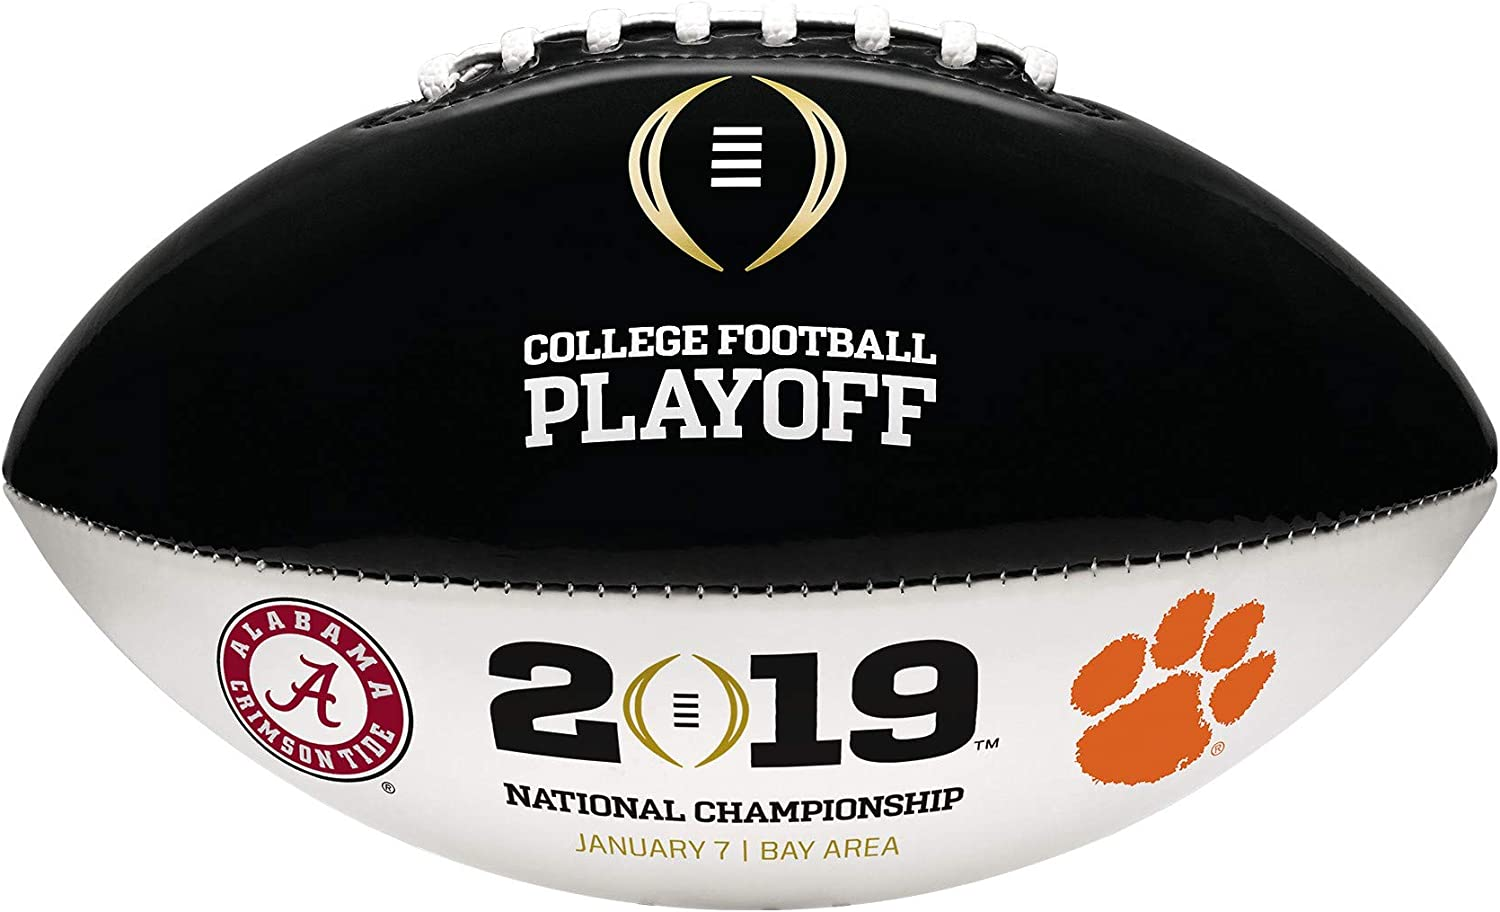 Boxed 2019 NCAA CFP OFFICIAL FULL SIZE SIGNATURE DUELING FOOTBALL with CLEMSON /& ALABAMA LOGOS